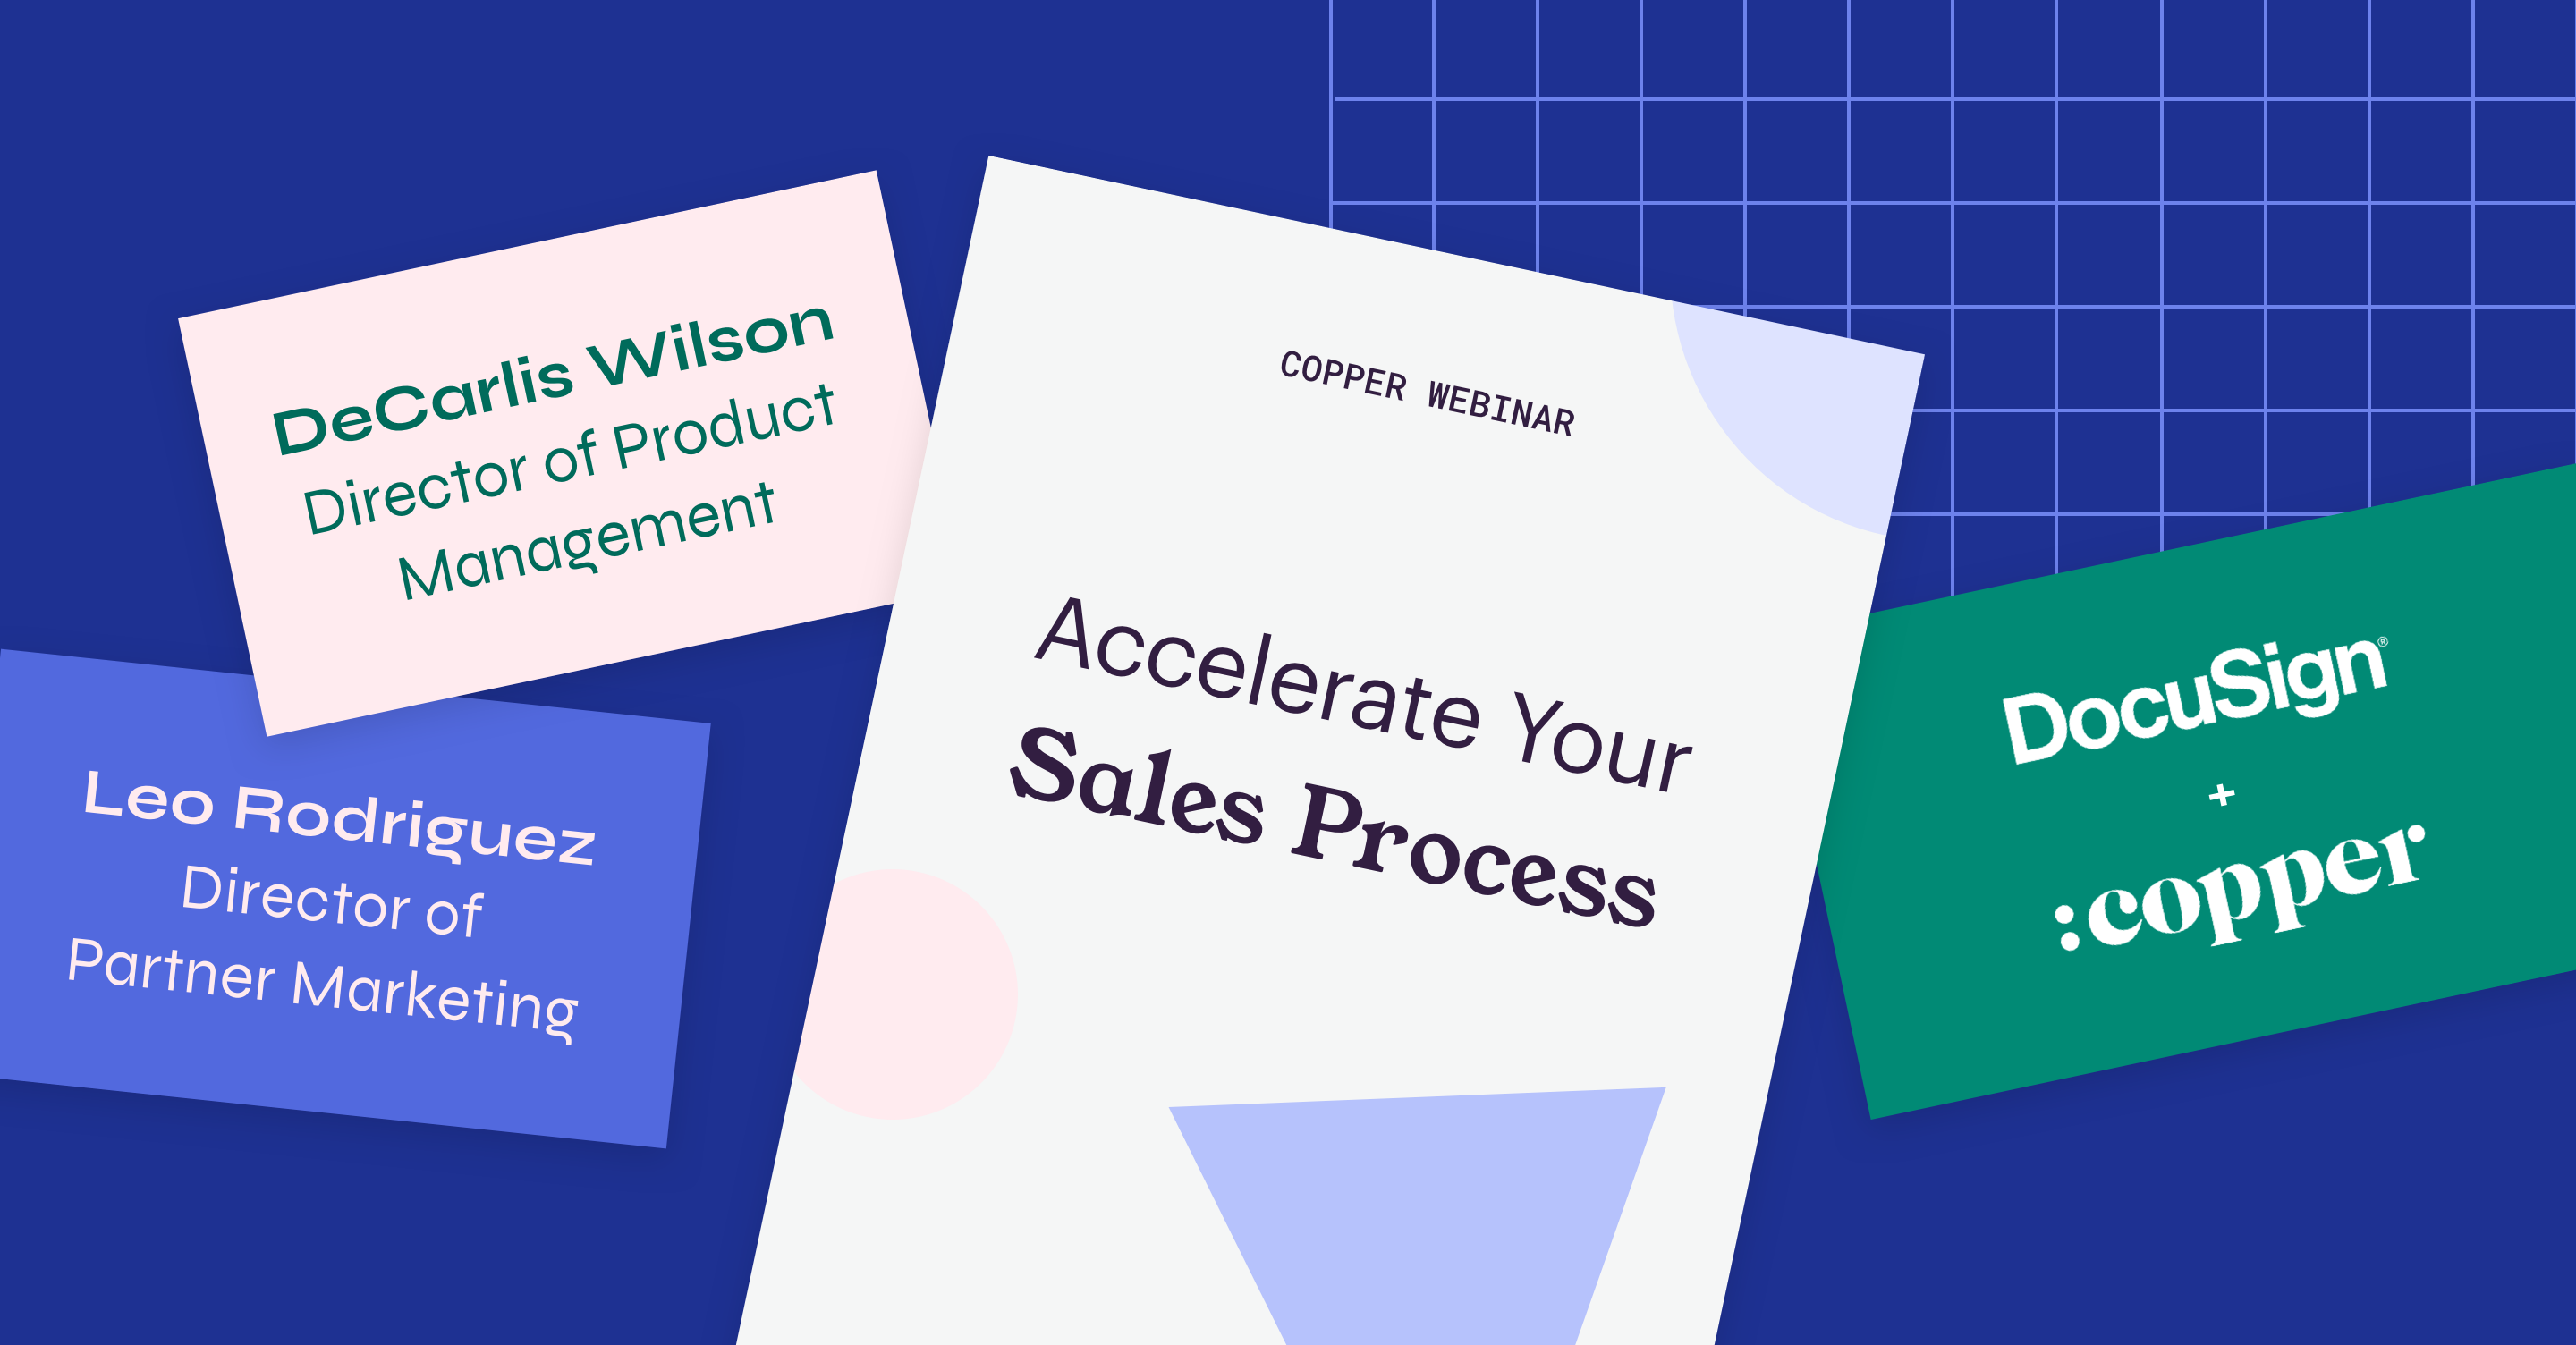 Accelerate Your Sales Process